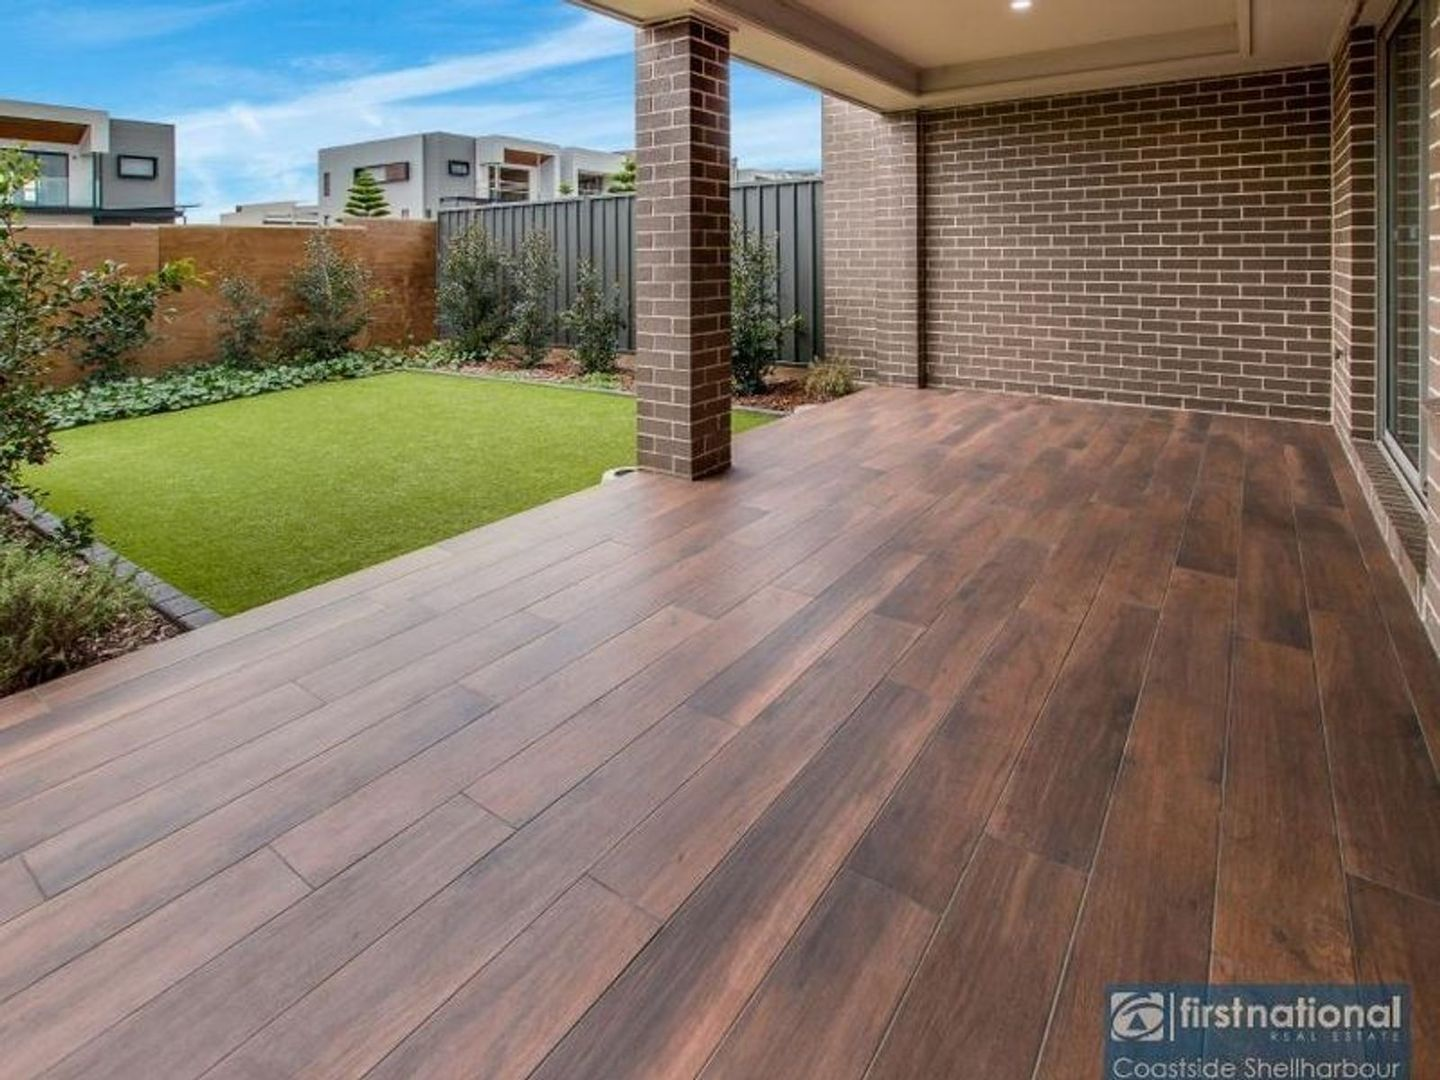 26A Cowries Avenue, Shell Cove NSW 2529, Image 2